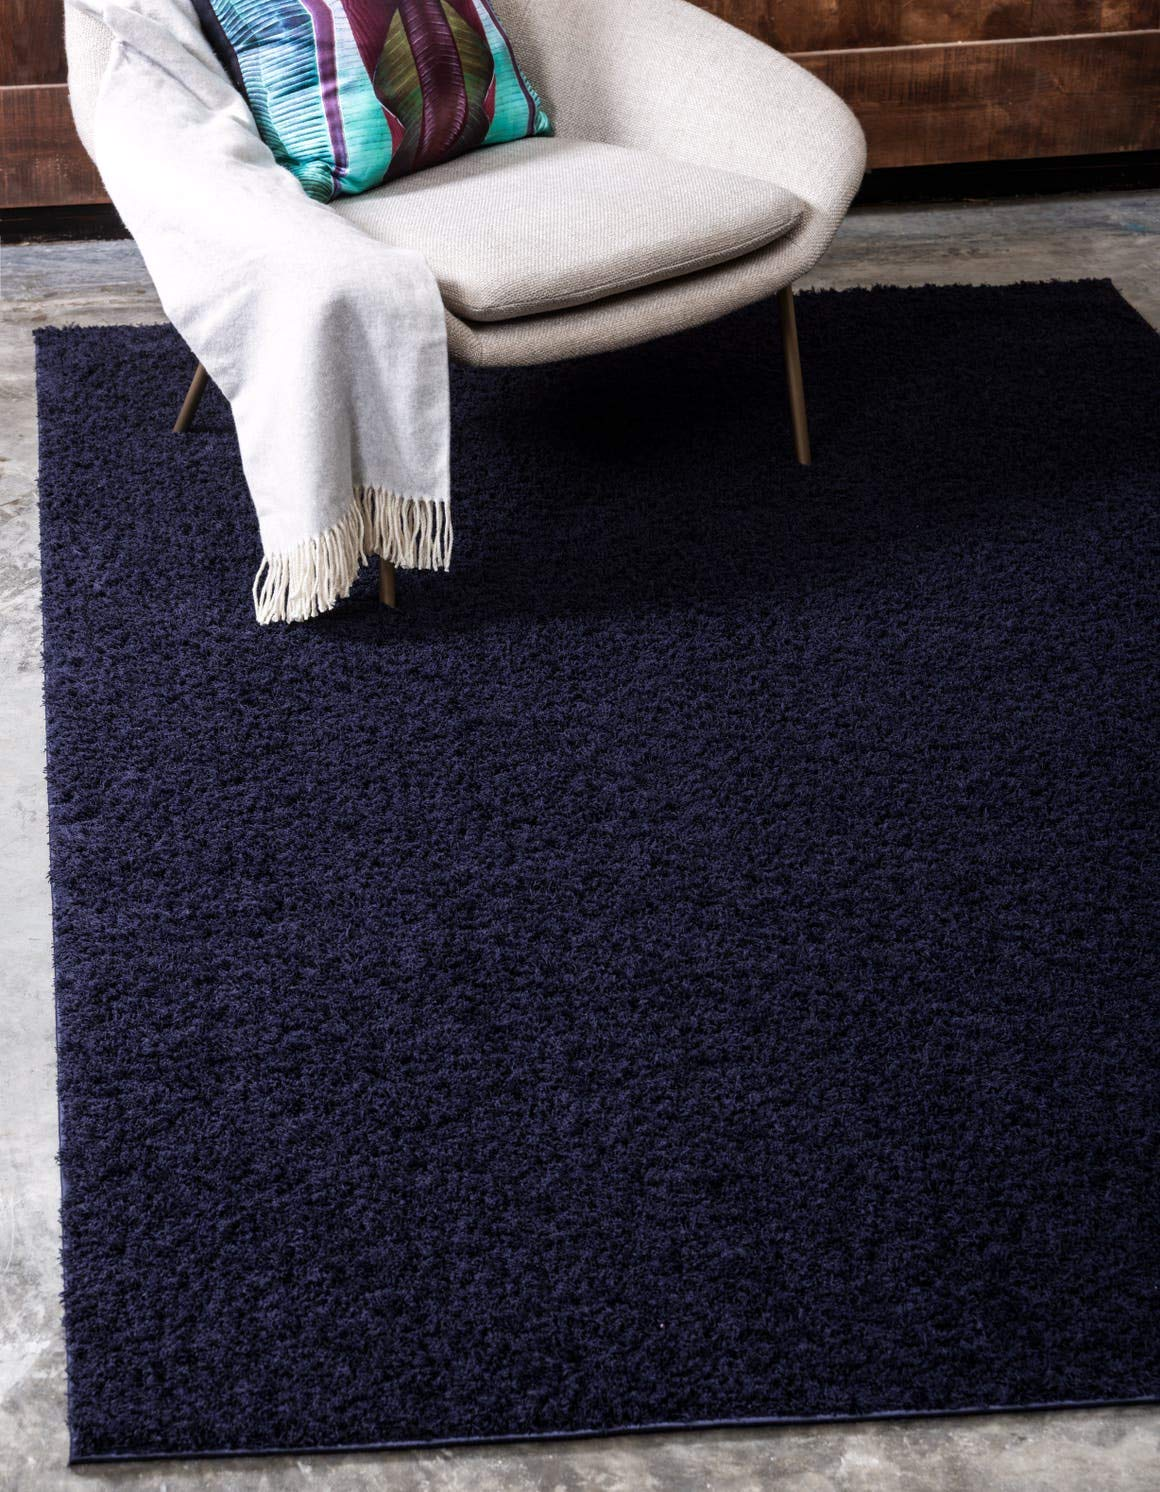 Unique Loom Serenity Solid Shag Collection Super Soft Micro Polyester Midnight Blue Area Rug 5 0 x 8 0